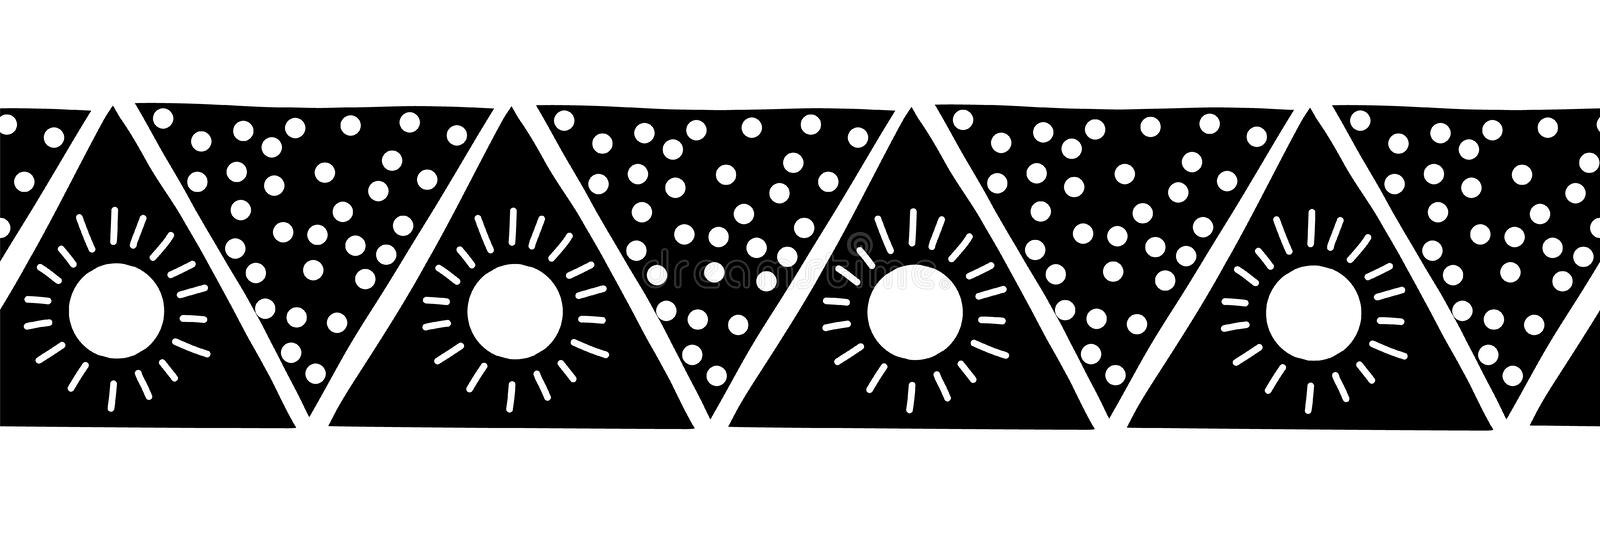 Monochrome seamless vector border triangles. Boho style pattern black and white hand drawn tribal ethnic motifs stock illustration